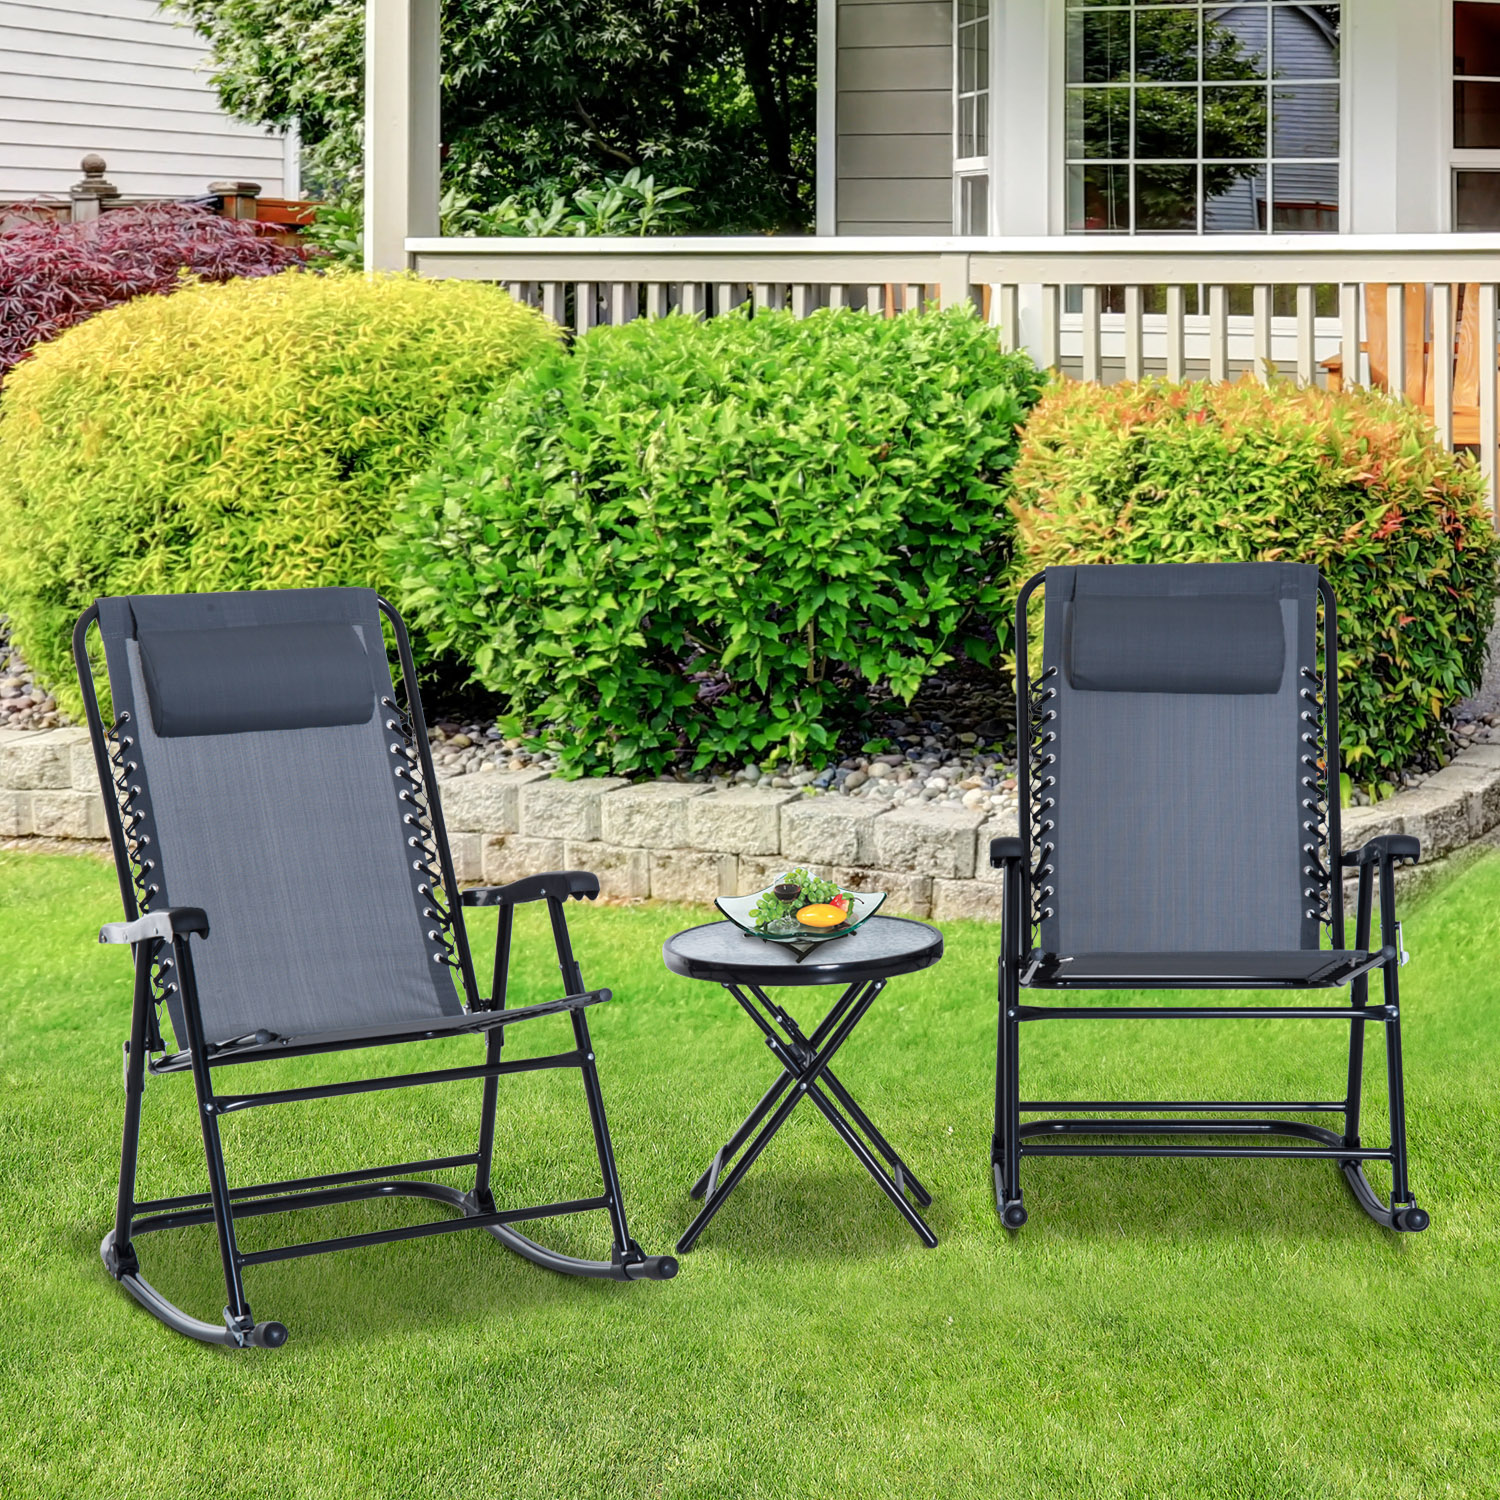 Image of CAD $109.99 Outsunny Garden Bistro Set Folding Rocker Portable 2 Chair 1 Side Table / CLEARANCE with Pillows Lounger Outdoor Grey Patio Glider Canada 95509791740